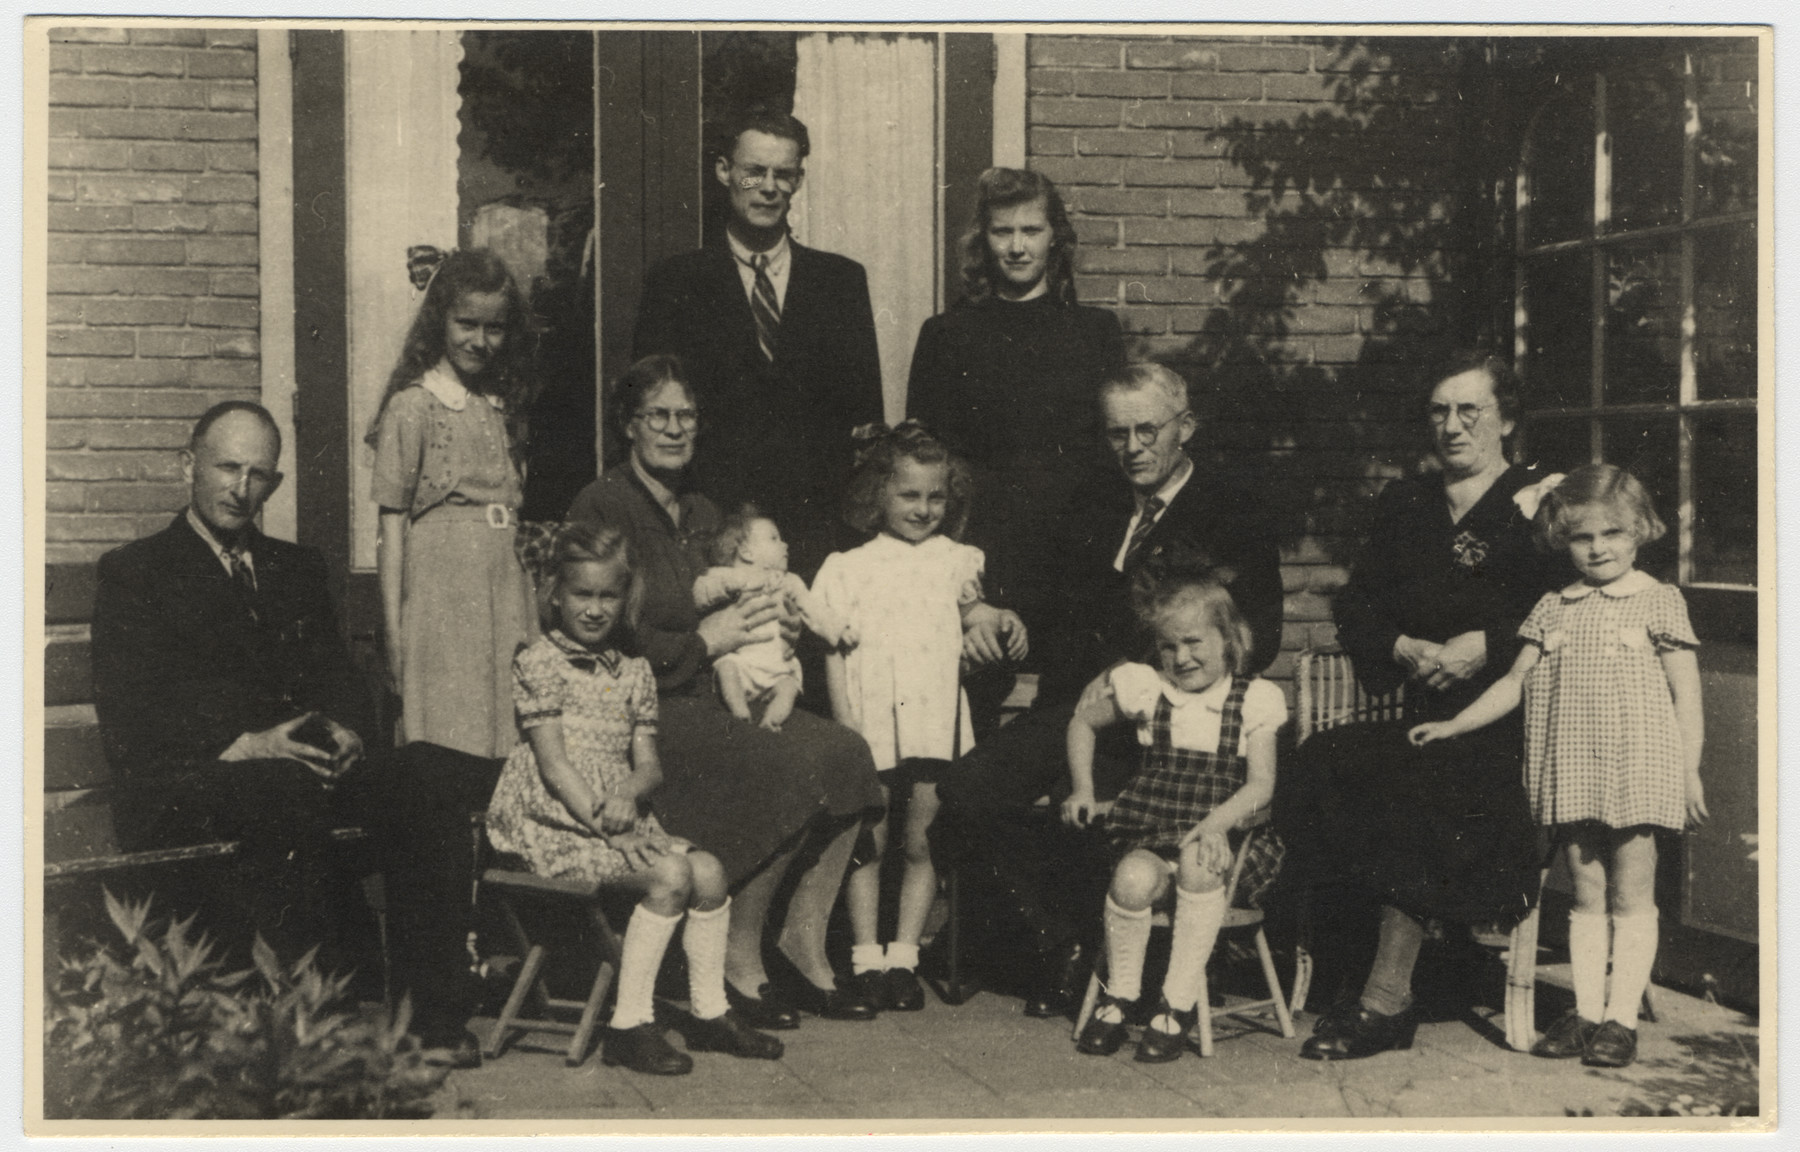 Group photograph of two Dutch rescuers families and the two Jewish sisters they saved.  Pictured on the left are Dirk and Cornelia van der Kamp and their three daughters.  Marjetta Kleerhoper is next to them in a white dress.  Anton and Wilhelmina Heger are seated on the right with Elisabeth Kleerhoper.  The Heger children are in the back.